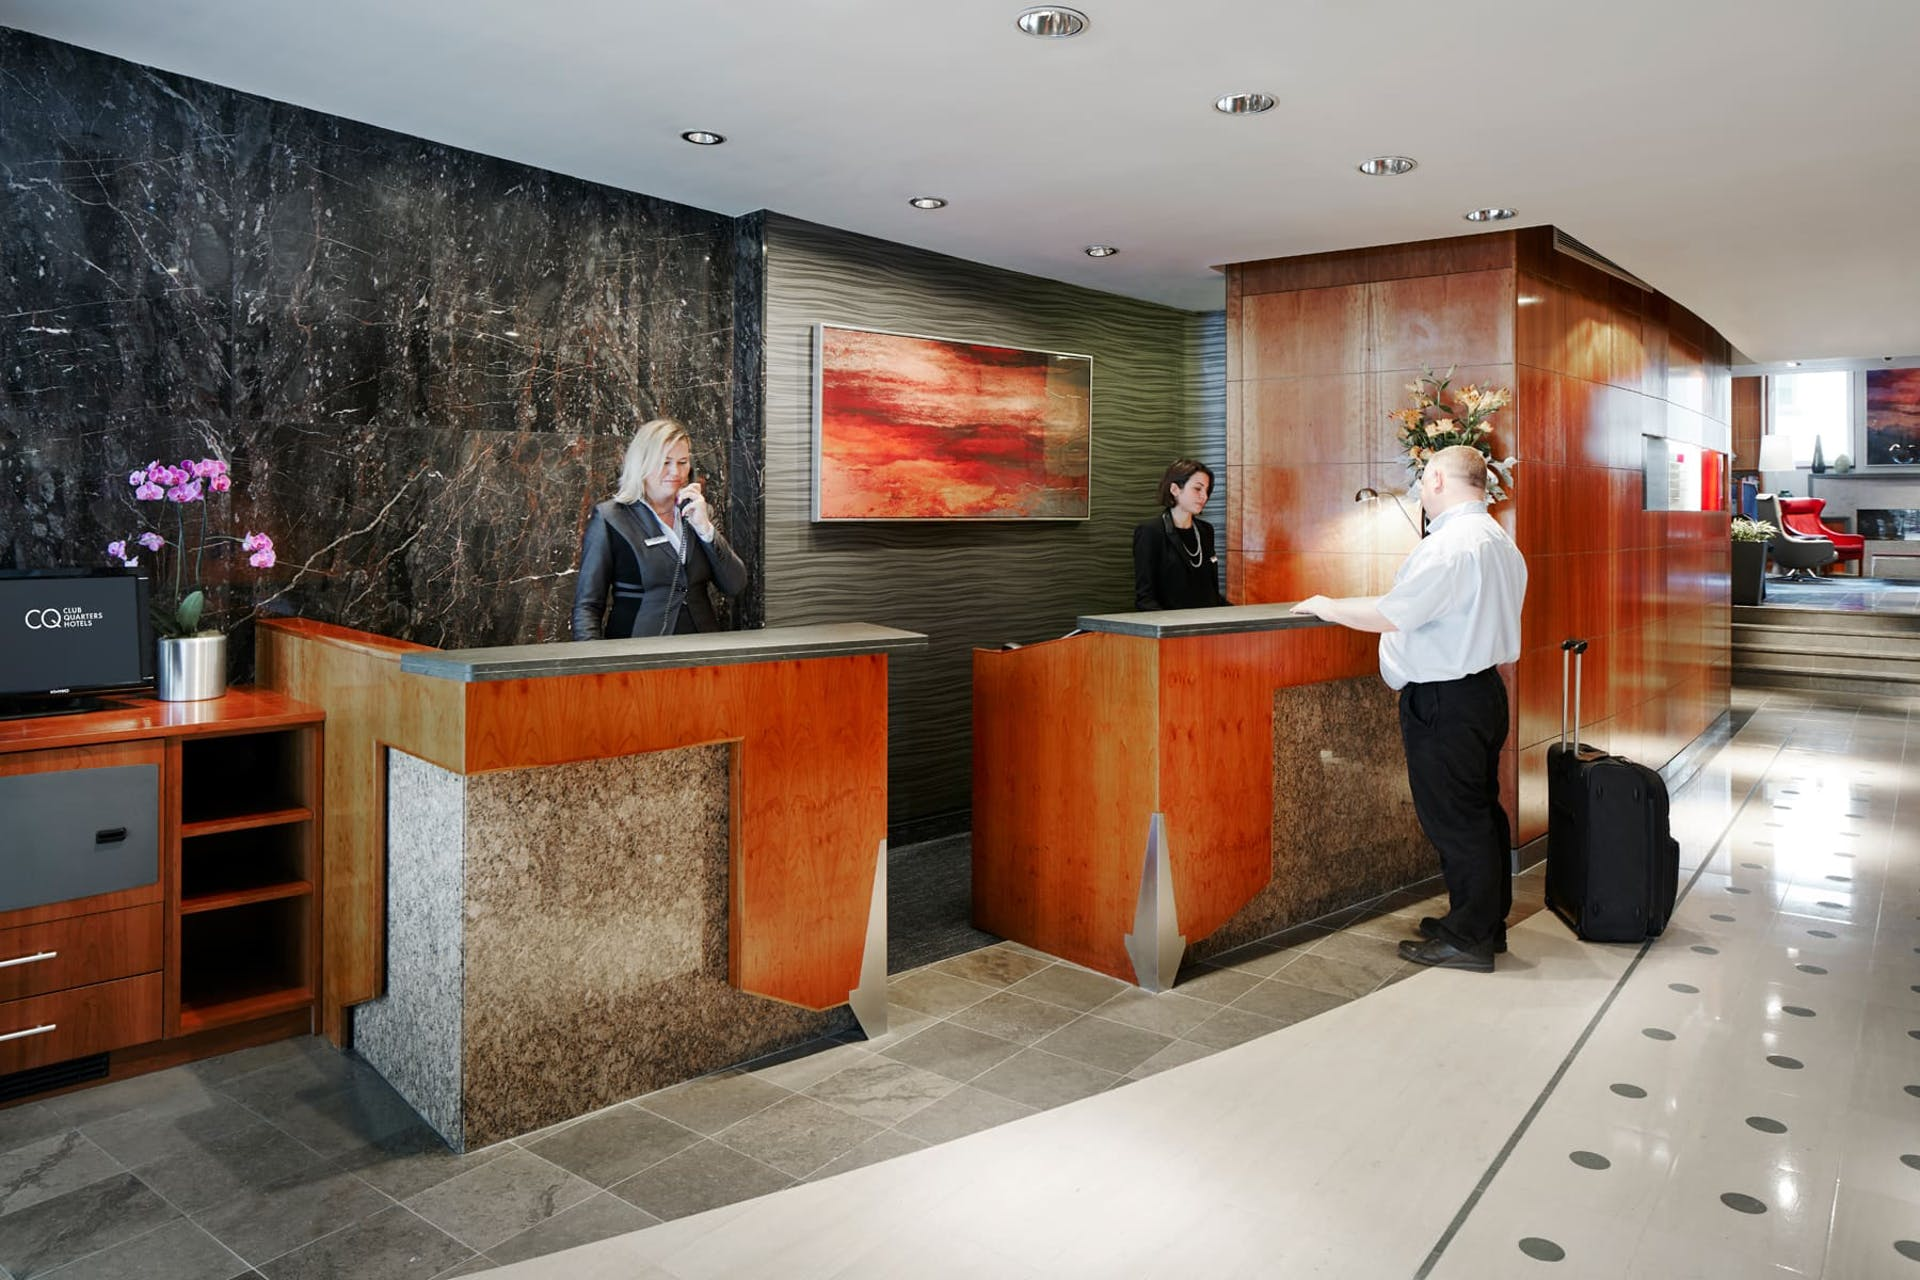 Lobby of CQ Hotel, St Paul's London